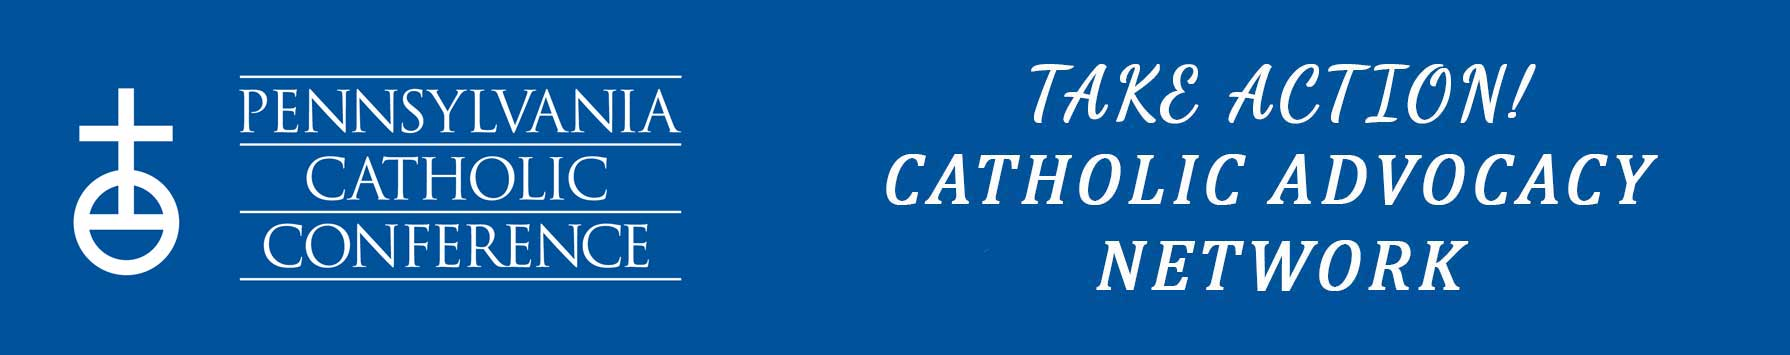 pennsylvania catholic conference banner